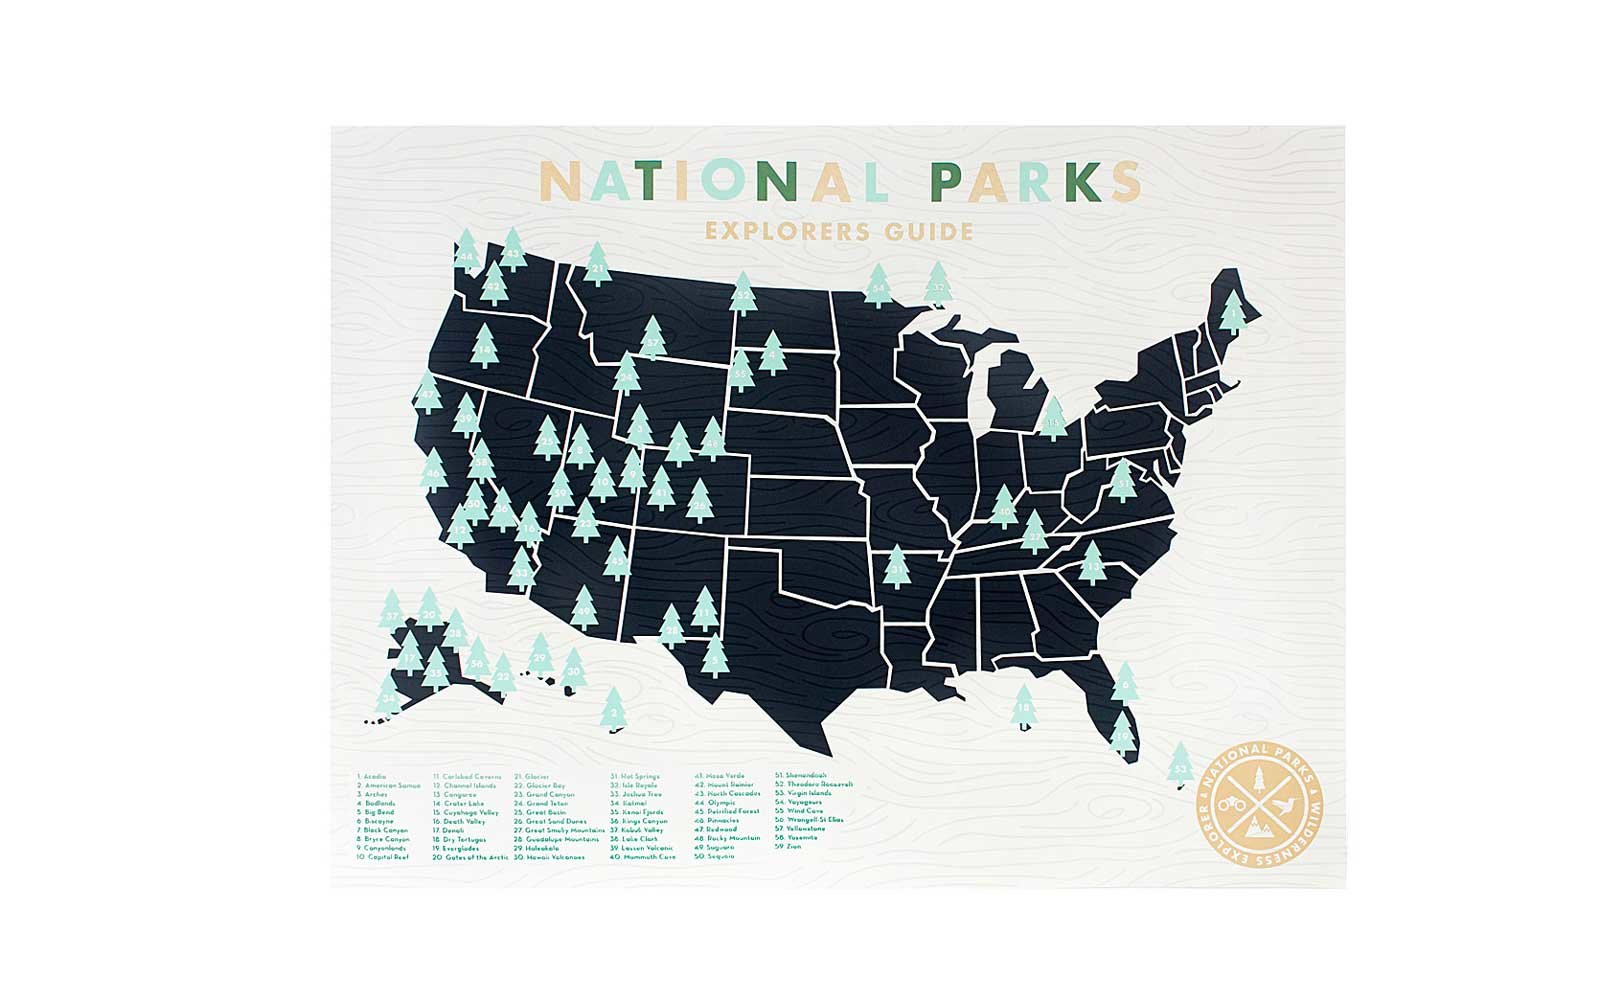 National Parks Explore Map